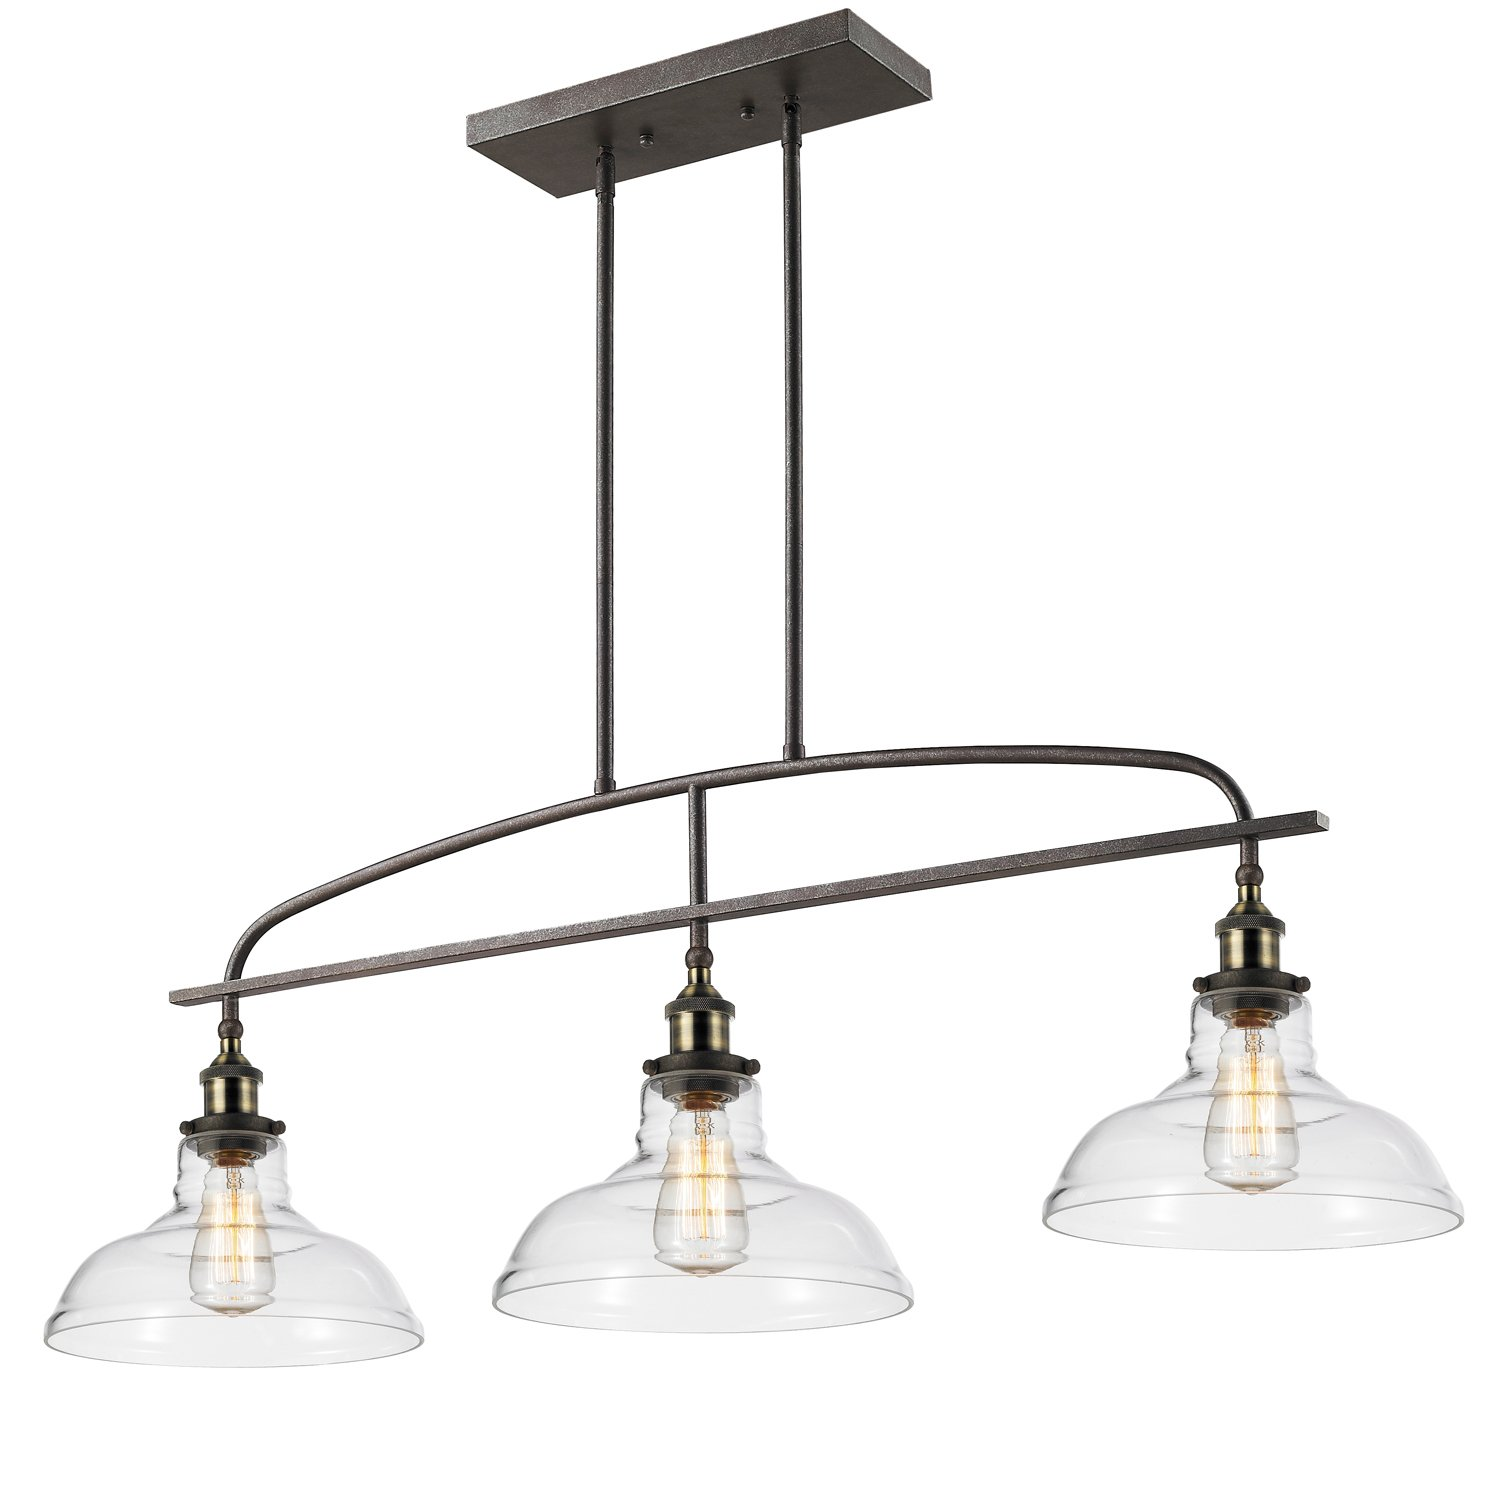 CLAXY Ecopower kitchen Linear island Pendant Lighting Vintage Lamp